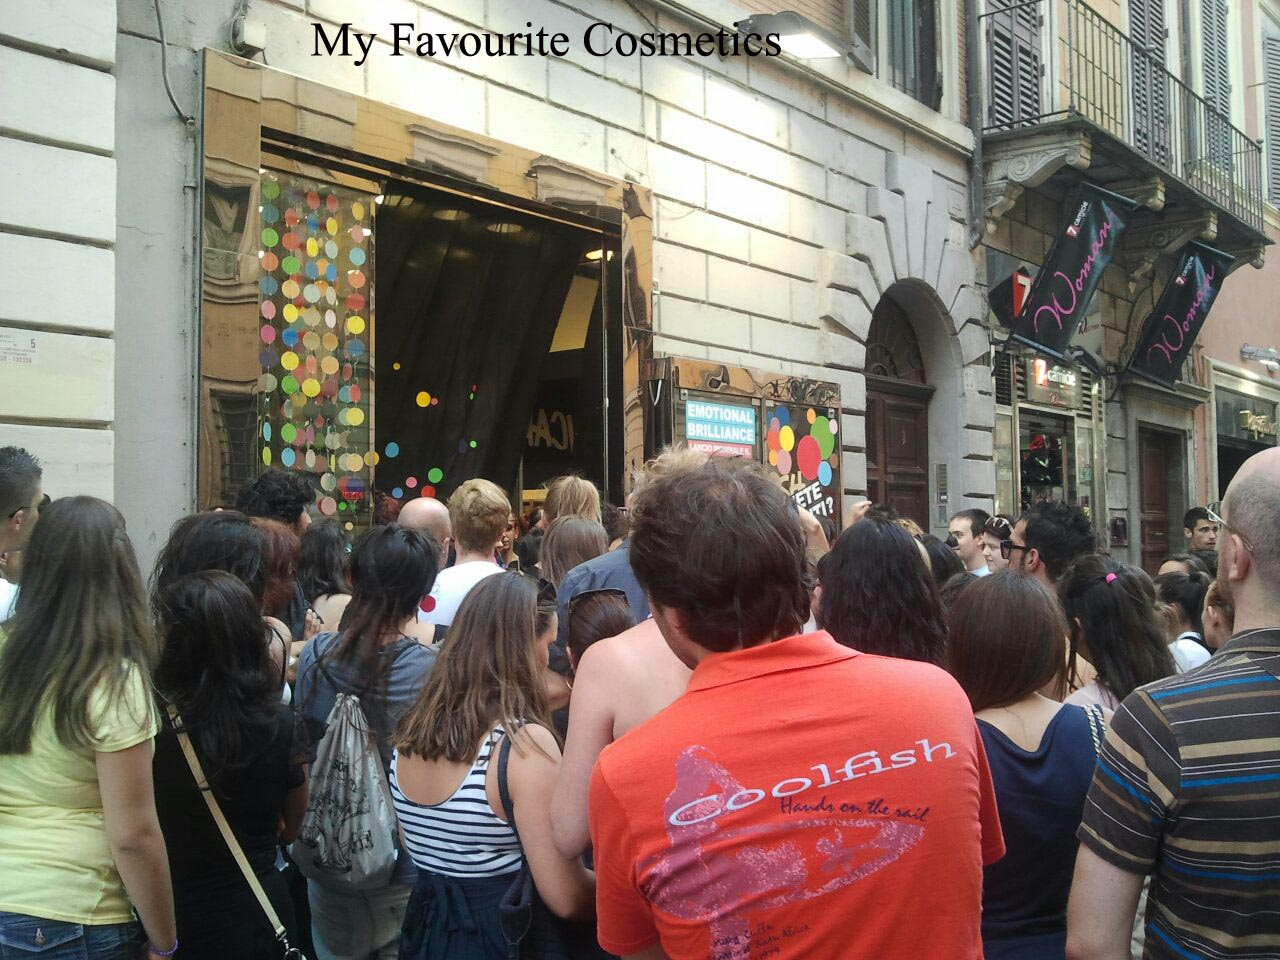 My favourite cosmetics lush via del corso roma cambio for Mac roma via del corso